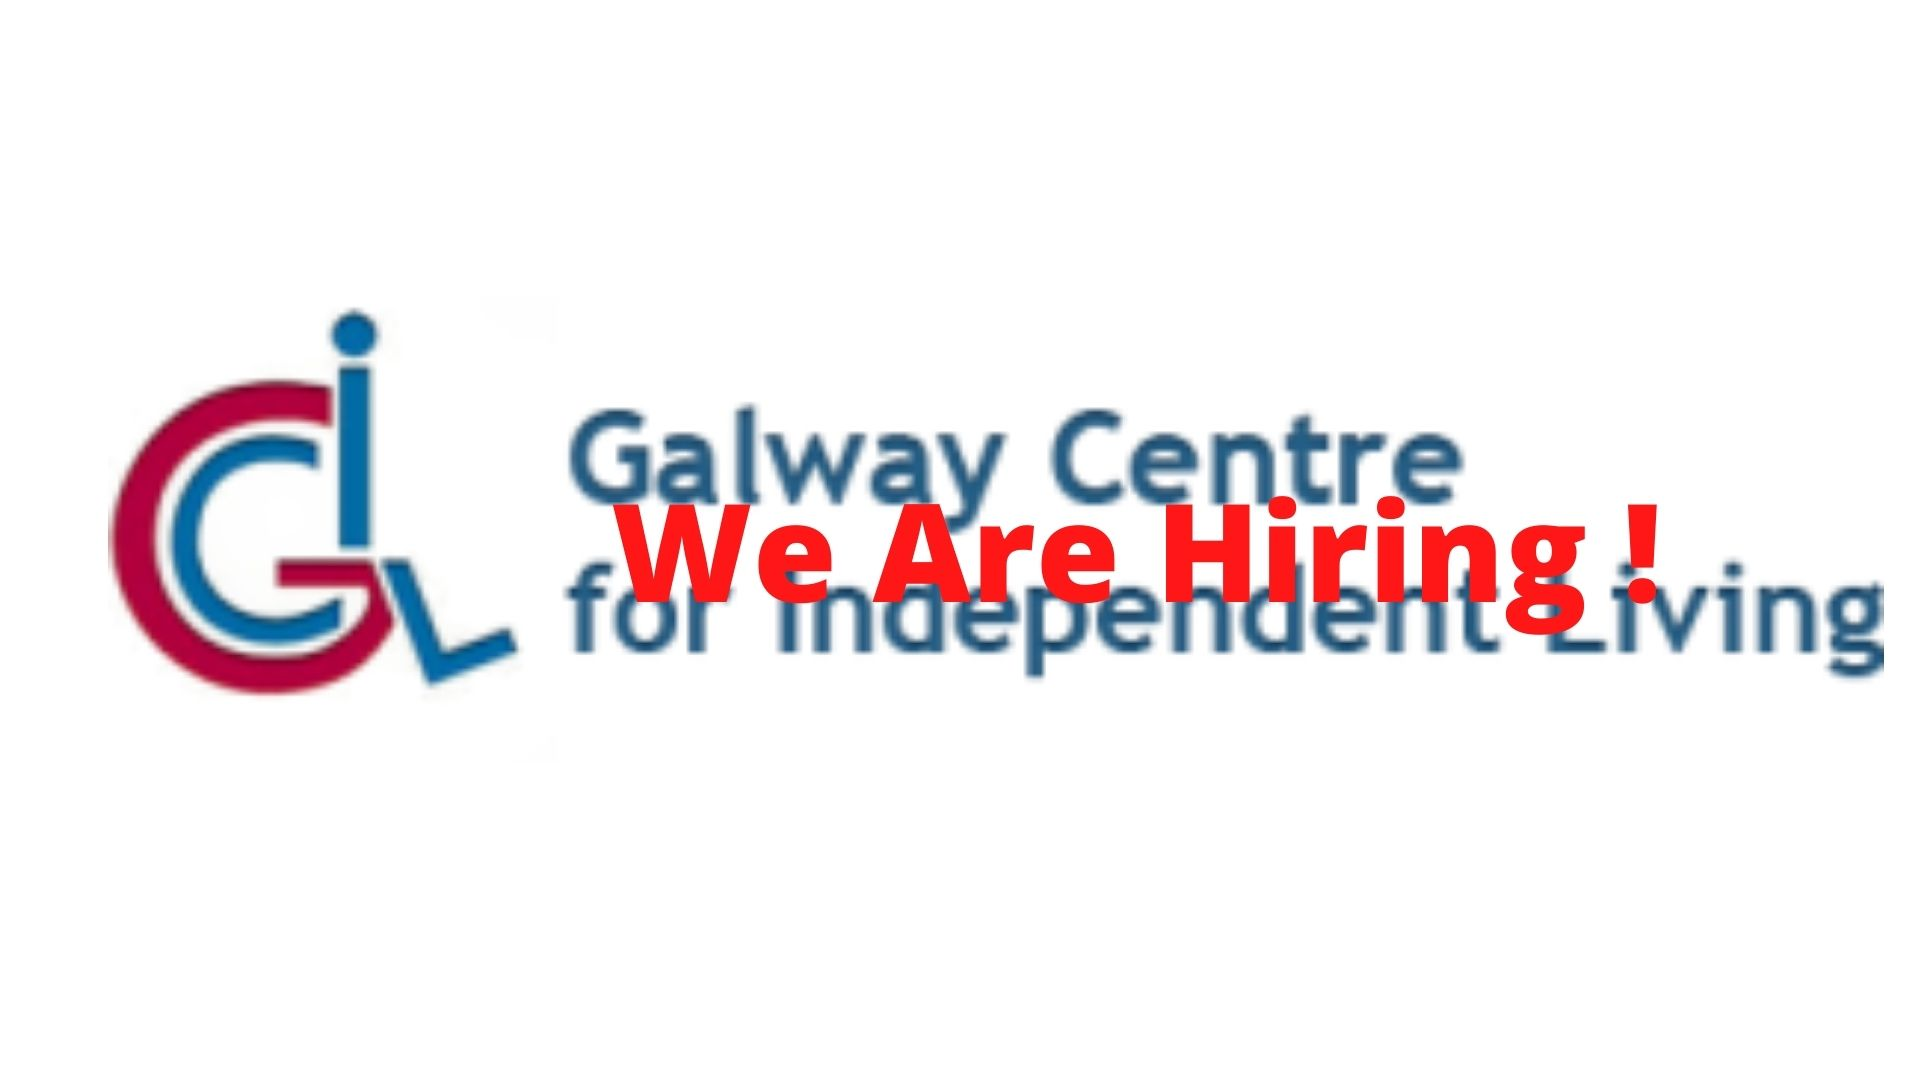 Galway Centre for Independent Living are Hiring